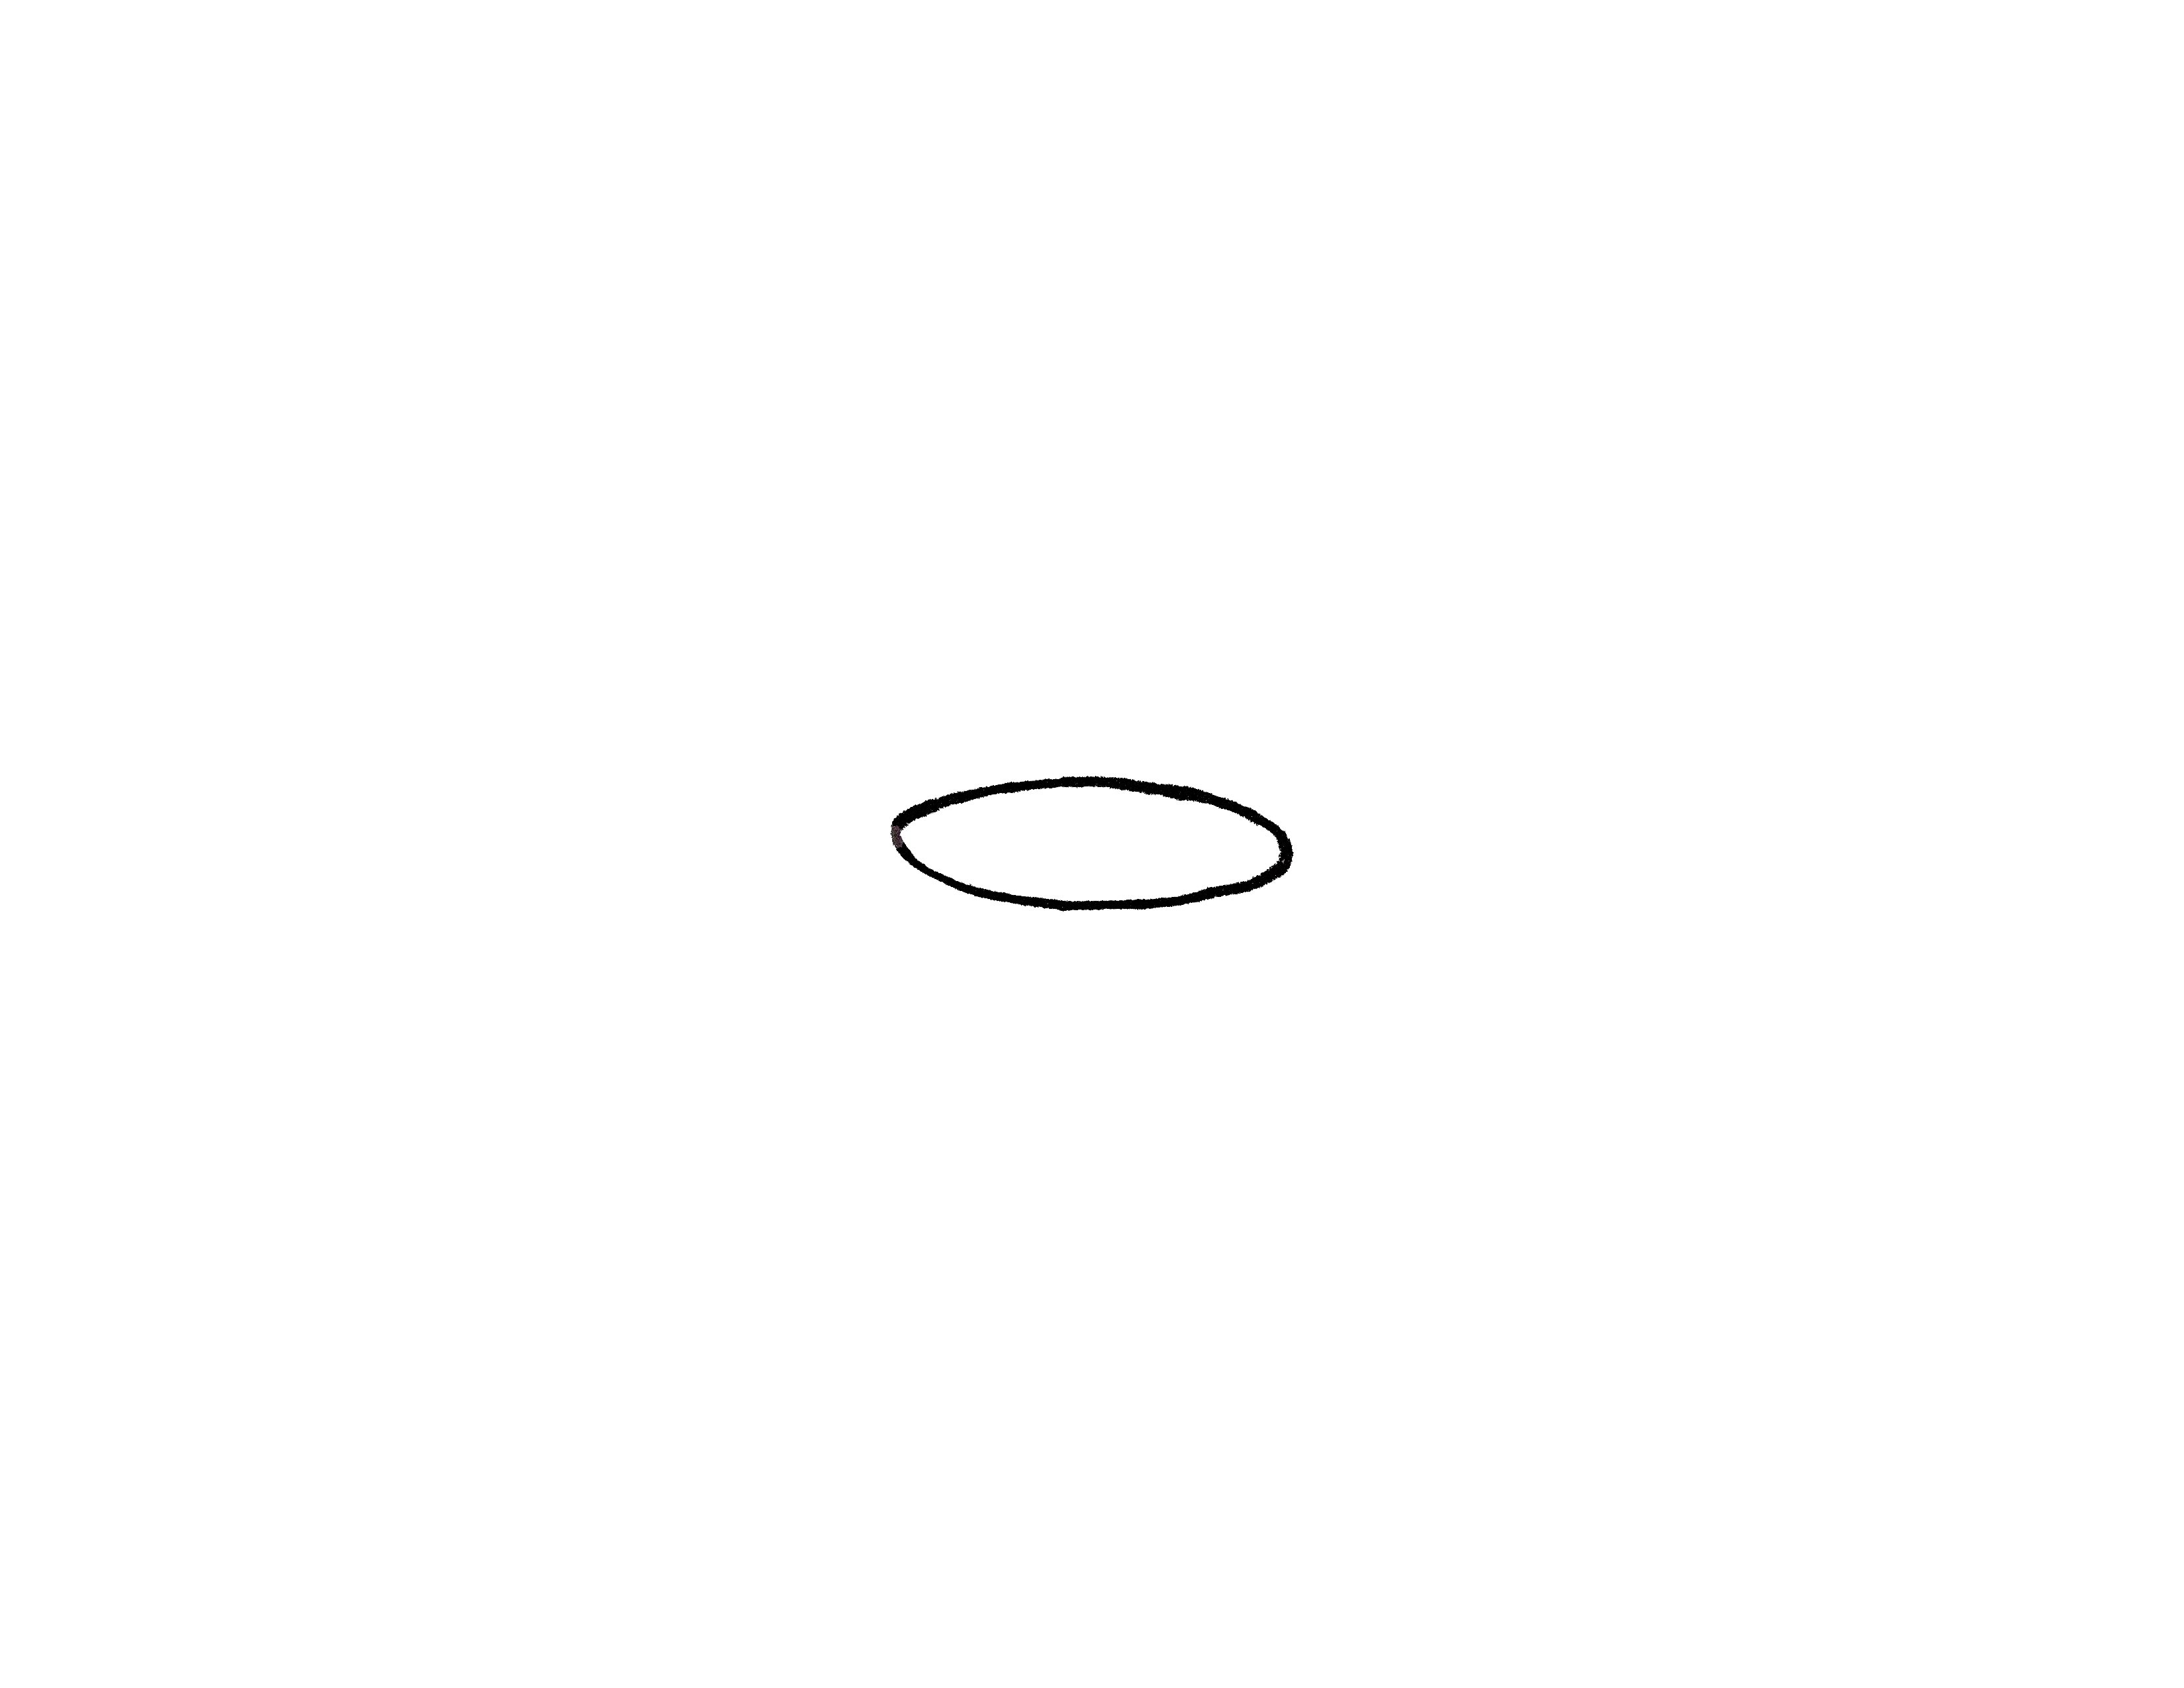 Crayon-Oval-Template